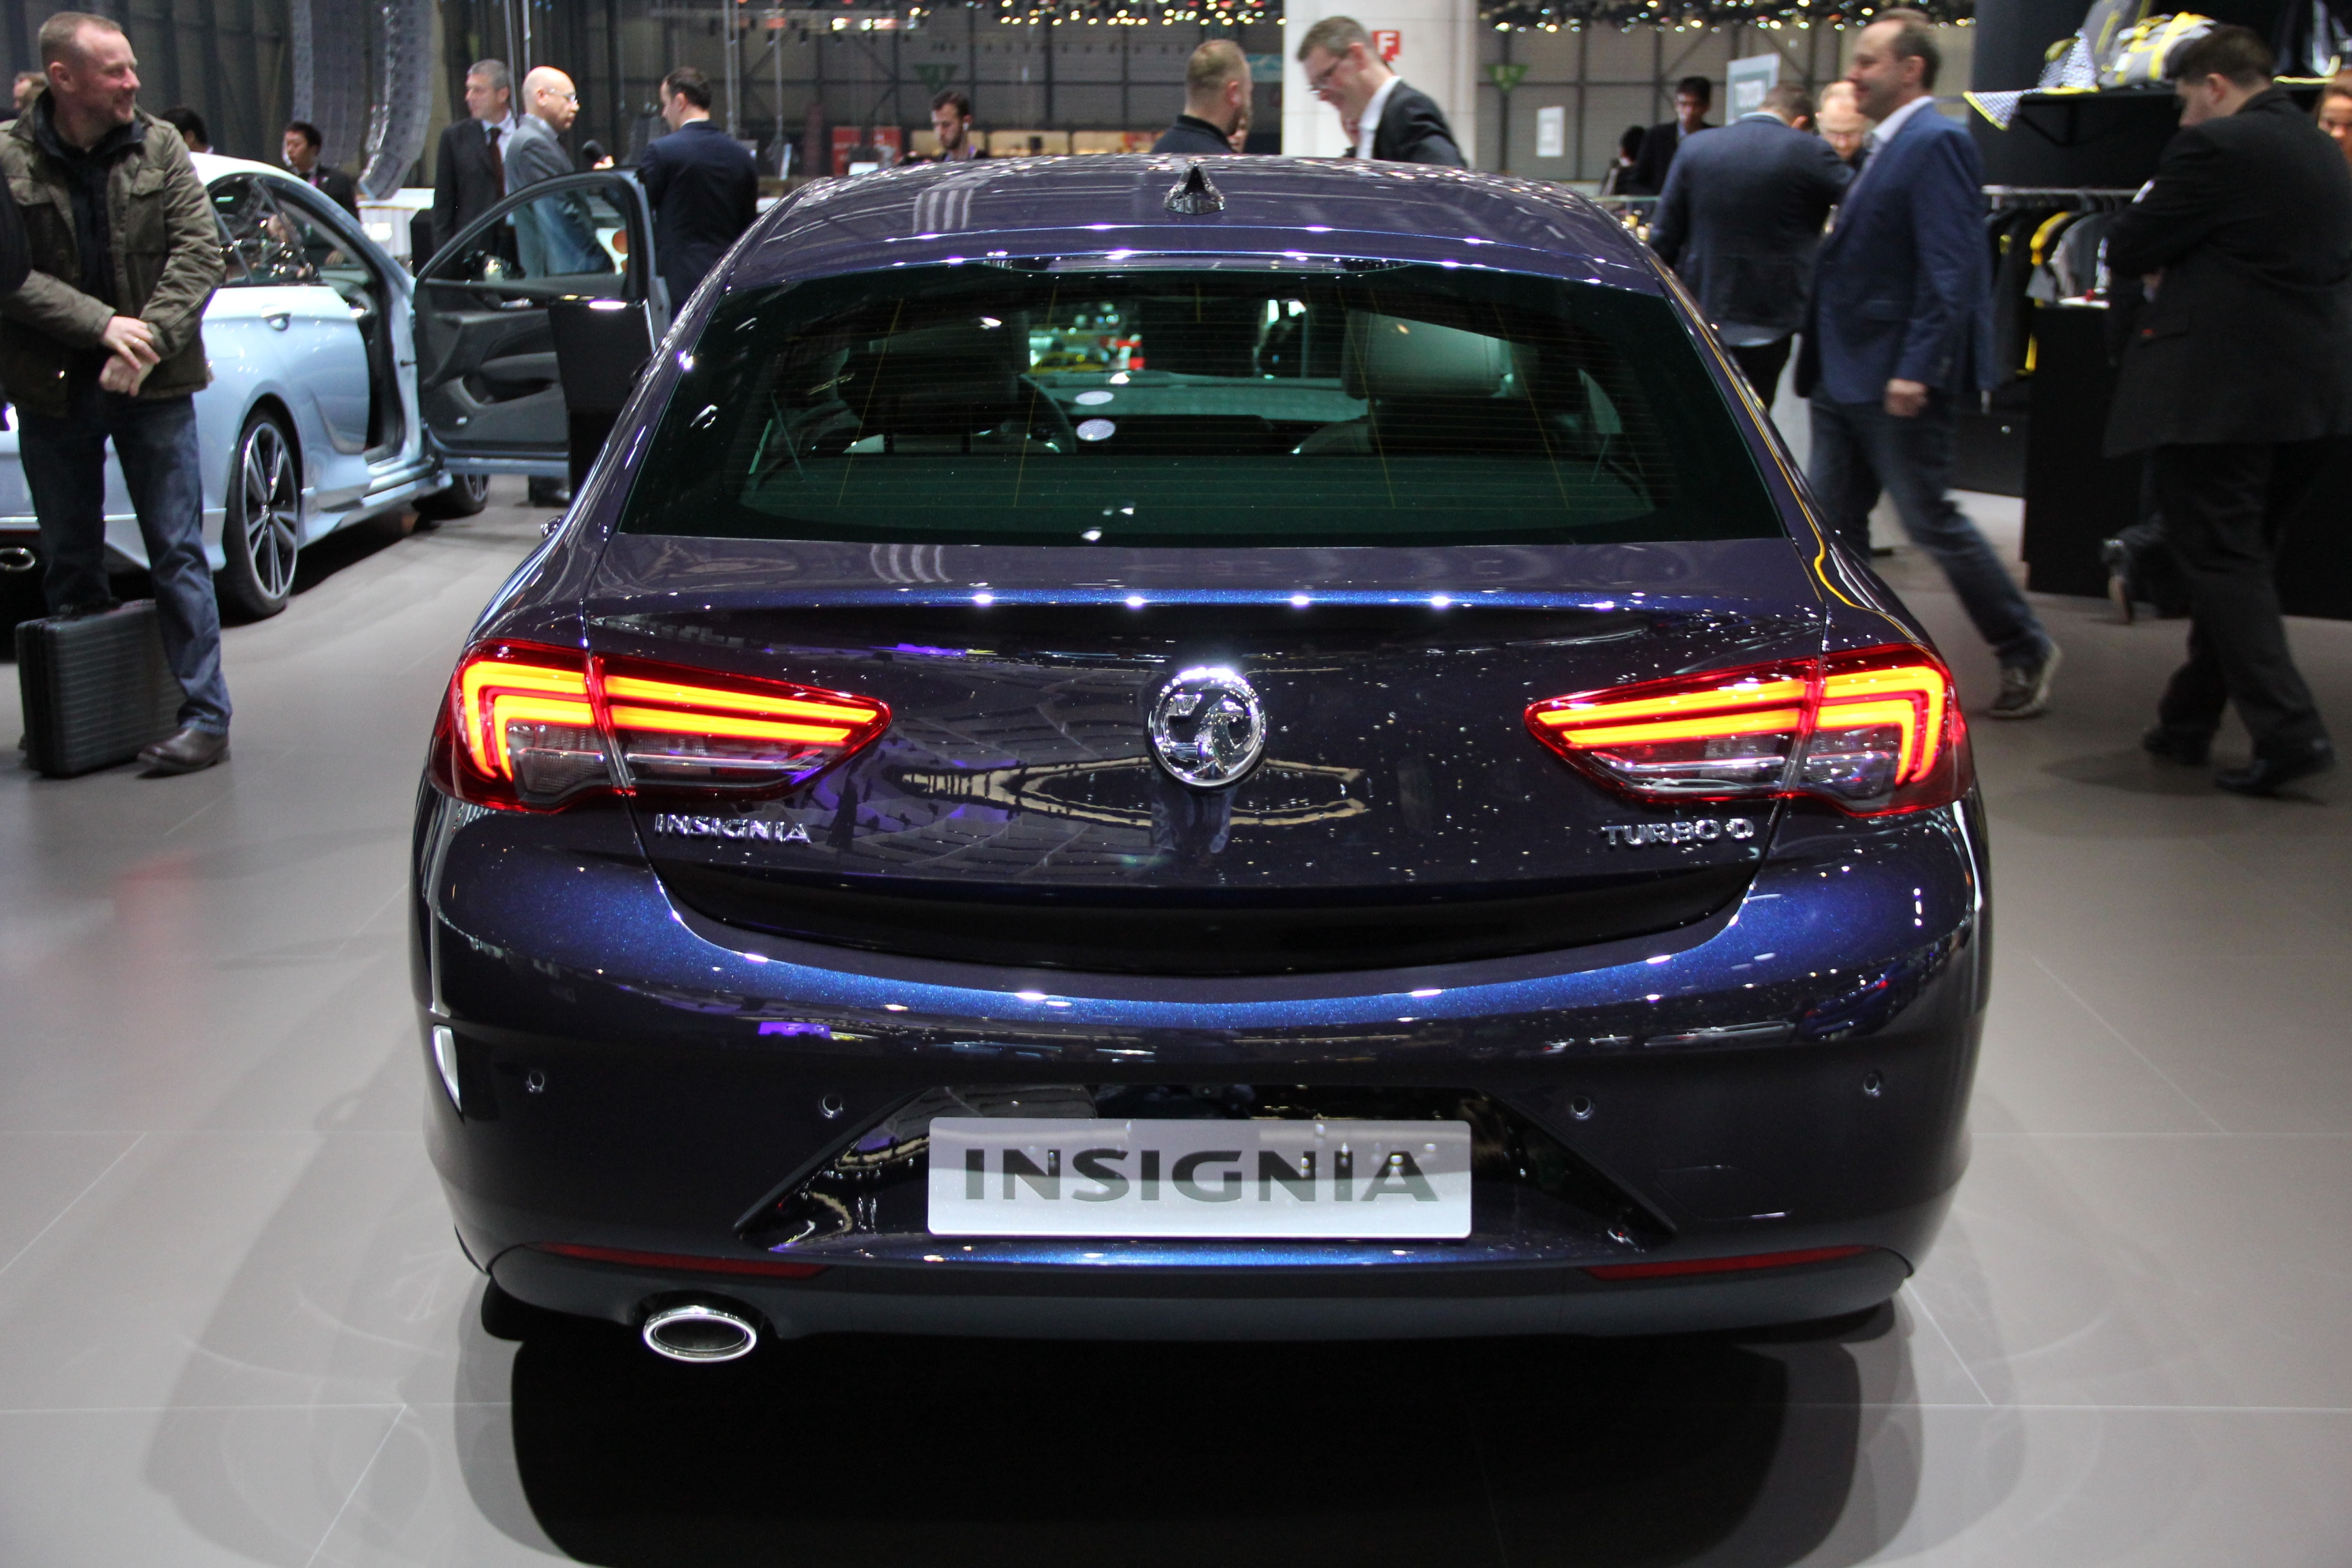 opel insignia grand sport berline xxl vid o en direct. Black Bedroom Furniture Sets. Home Design Ideas